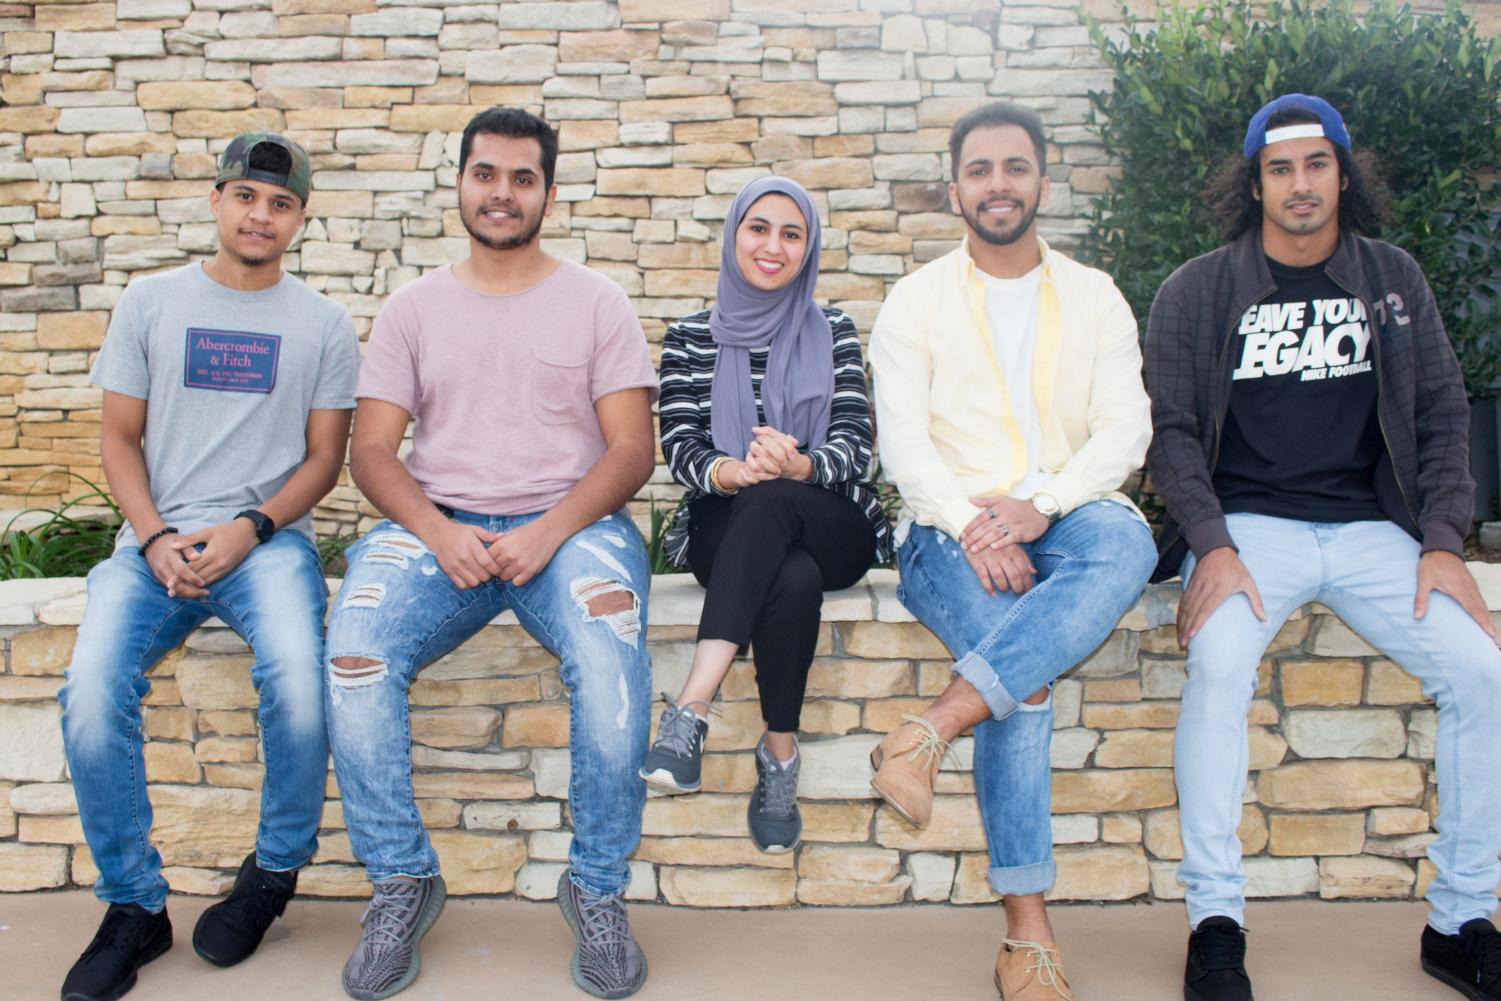 Students Bayan Sairafi, Abdulaziz Alamro, Turki Alotaibi, Abdulrahman Alolowi and Abdullah Banawas from the Saudi Students Association pose for a photo on Nov. 13.